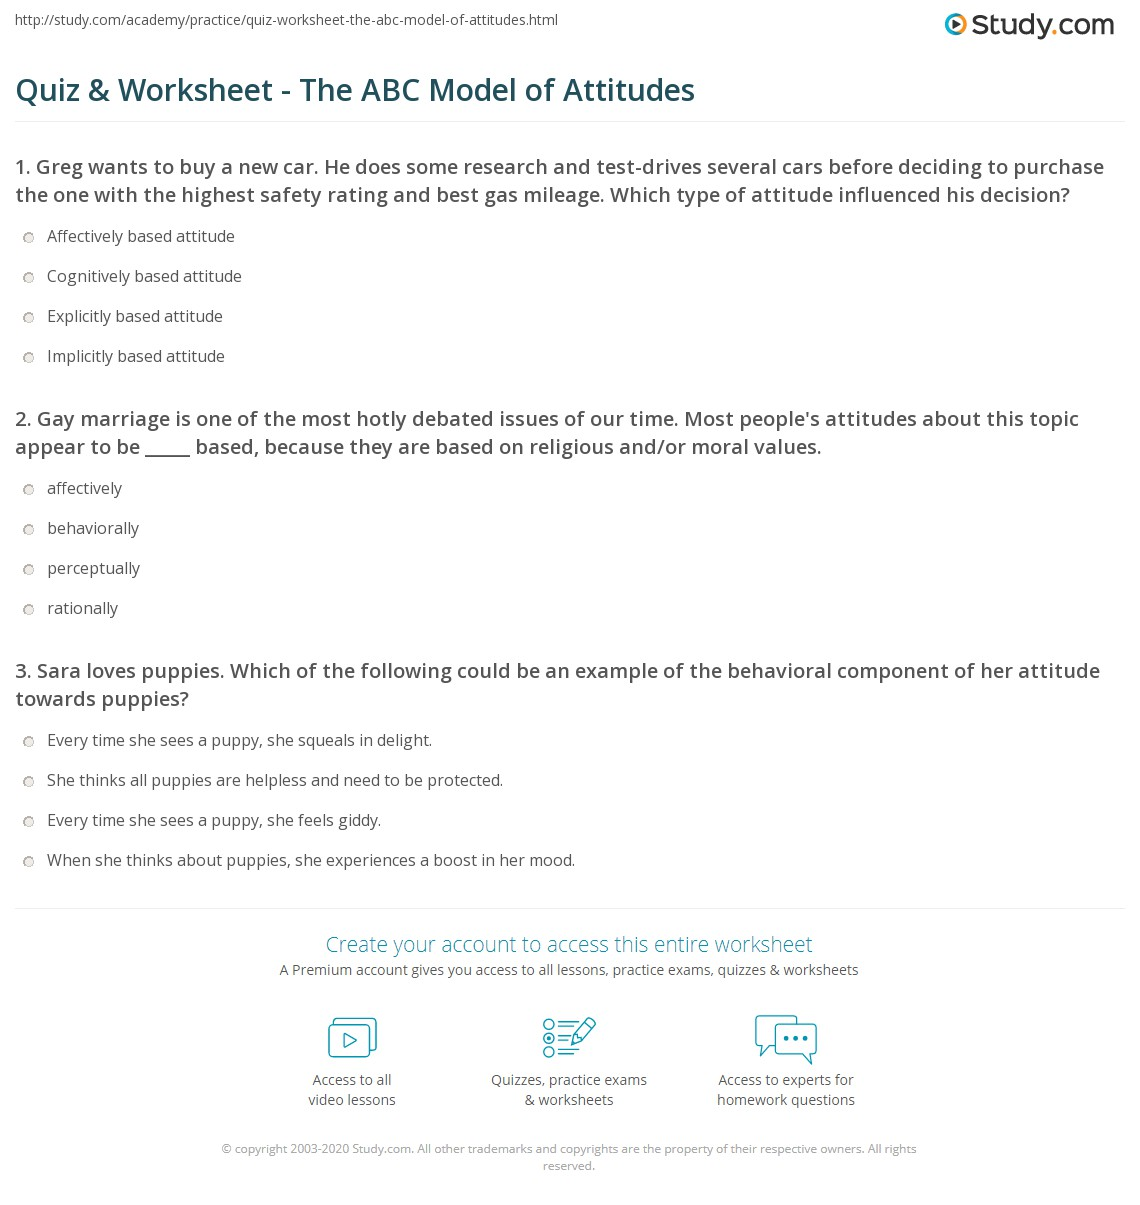 quiz worksheet the abc model of attitudes com 1 gay marriage is one of the most hotly debated issues of our time most people s attitudes about this topic appear to be based because they are